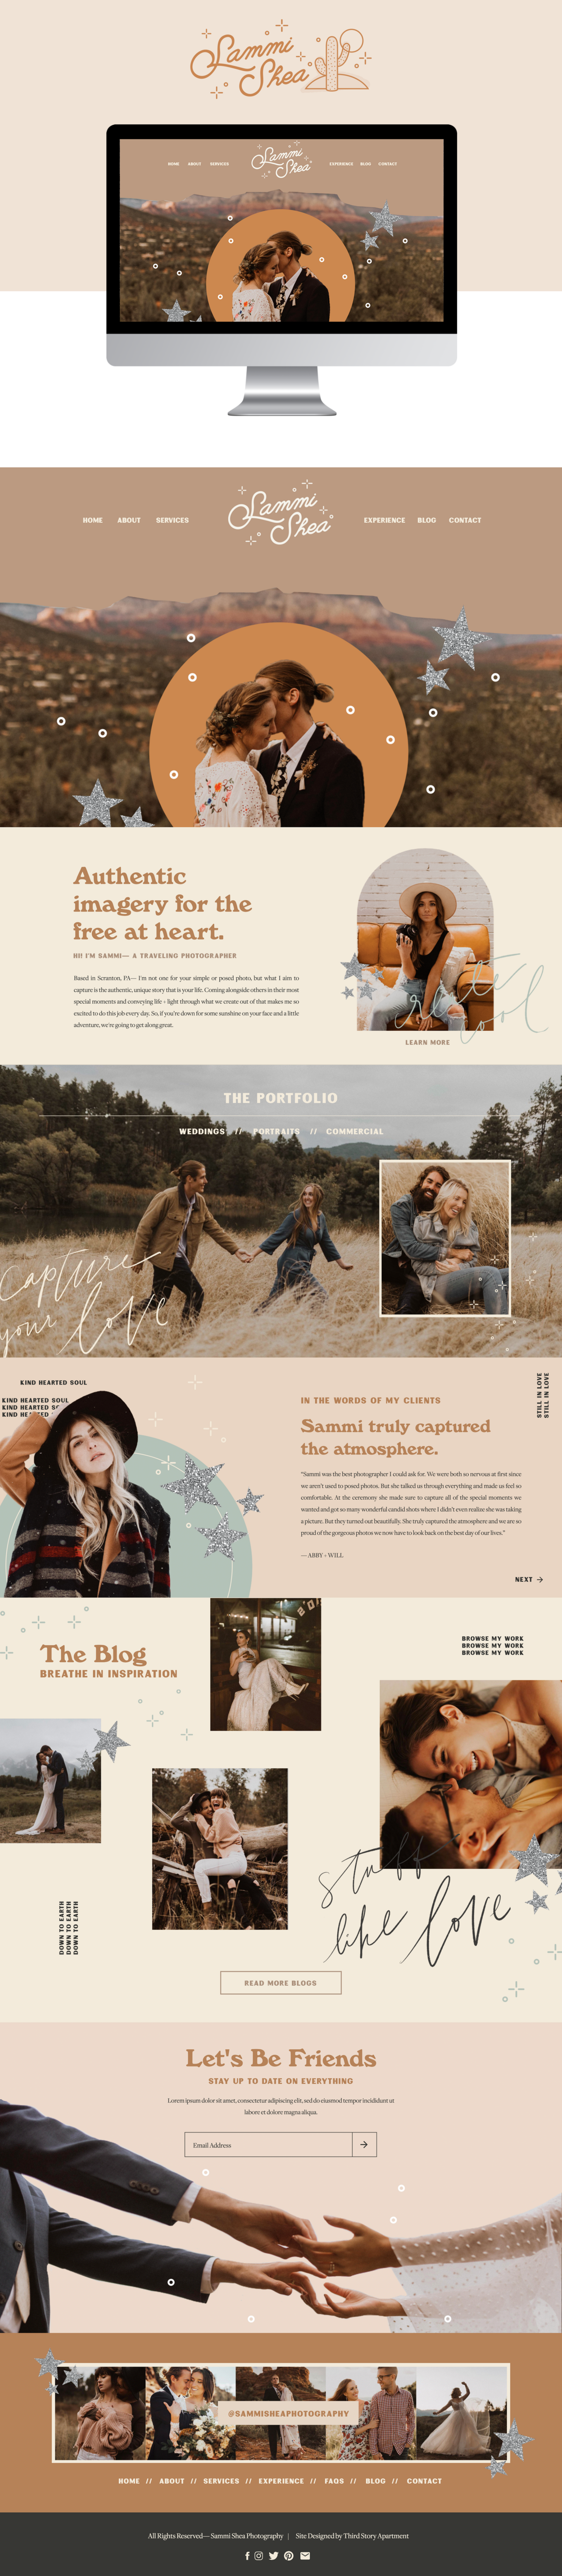 ThirdStory-Client-Desktop-And-Layout-SammieShea